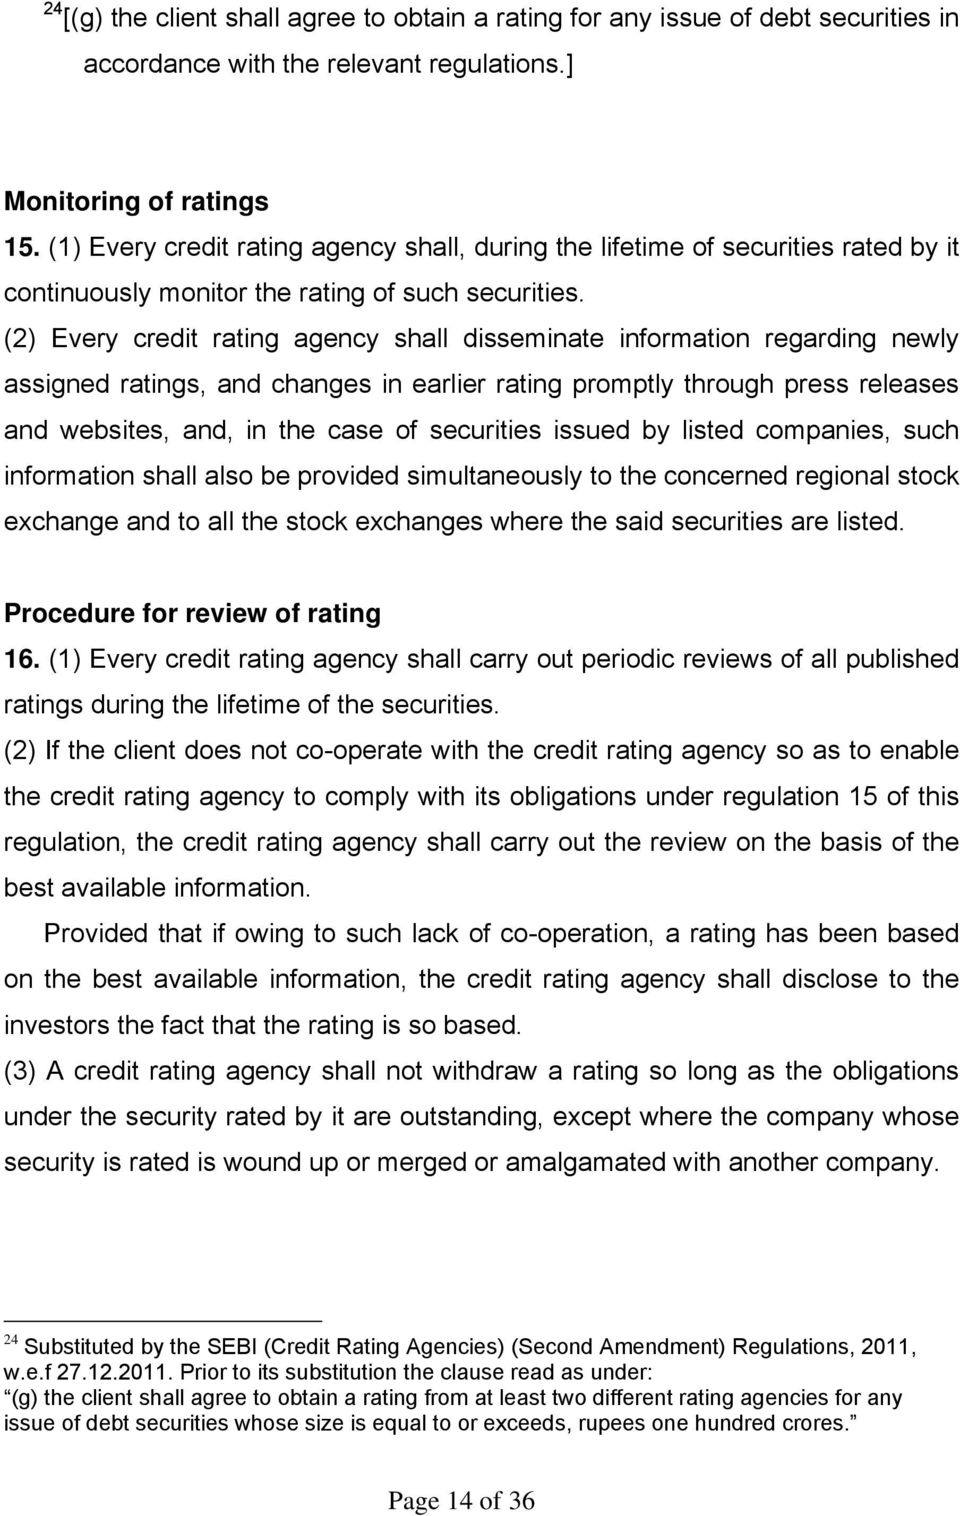 (2) Every credit rating agency shall disseminate information regarding newly assigned ratings, and changes in earlier rating promptly through press releases and websites, and, in the case of